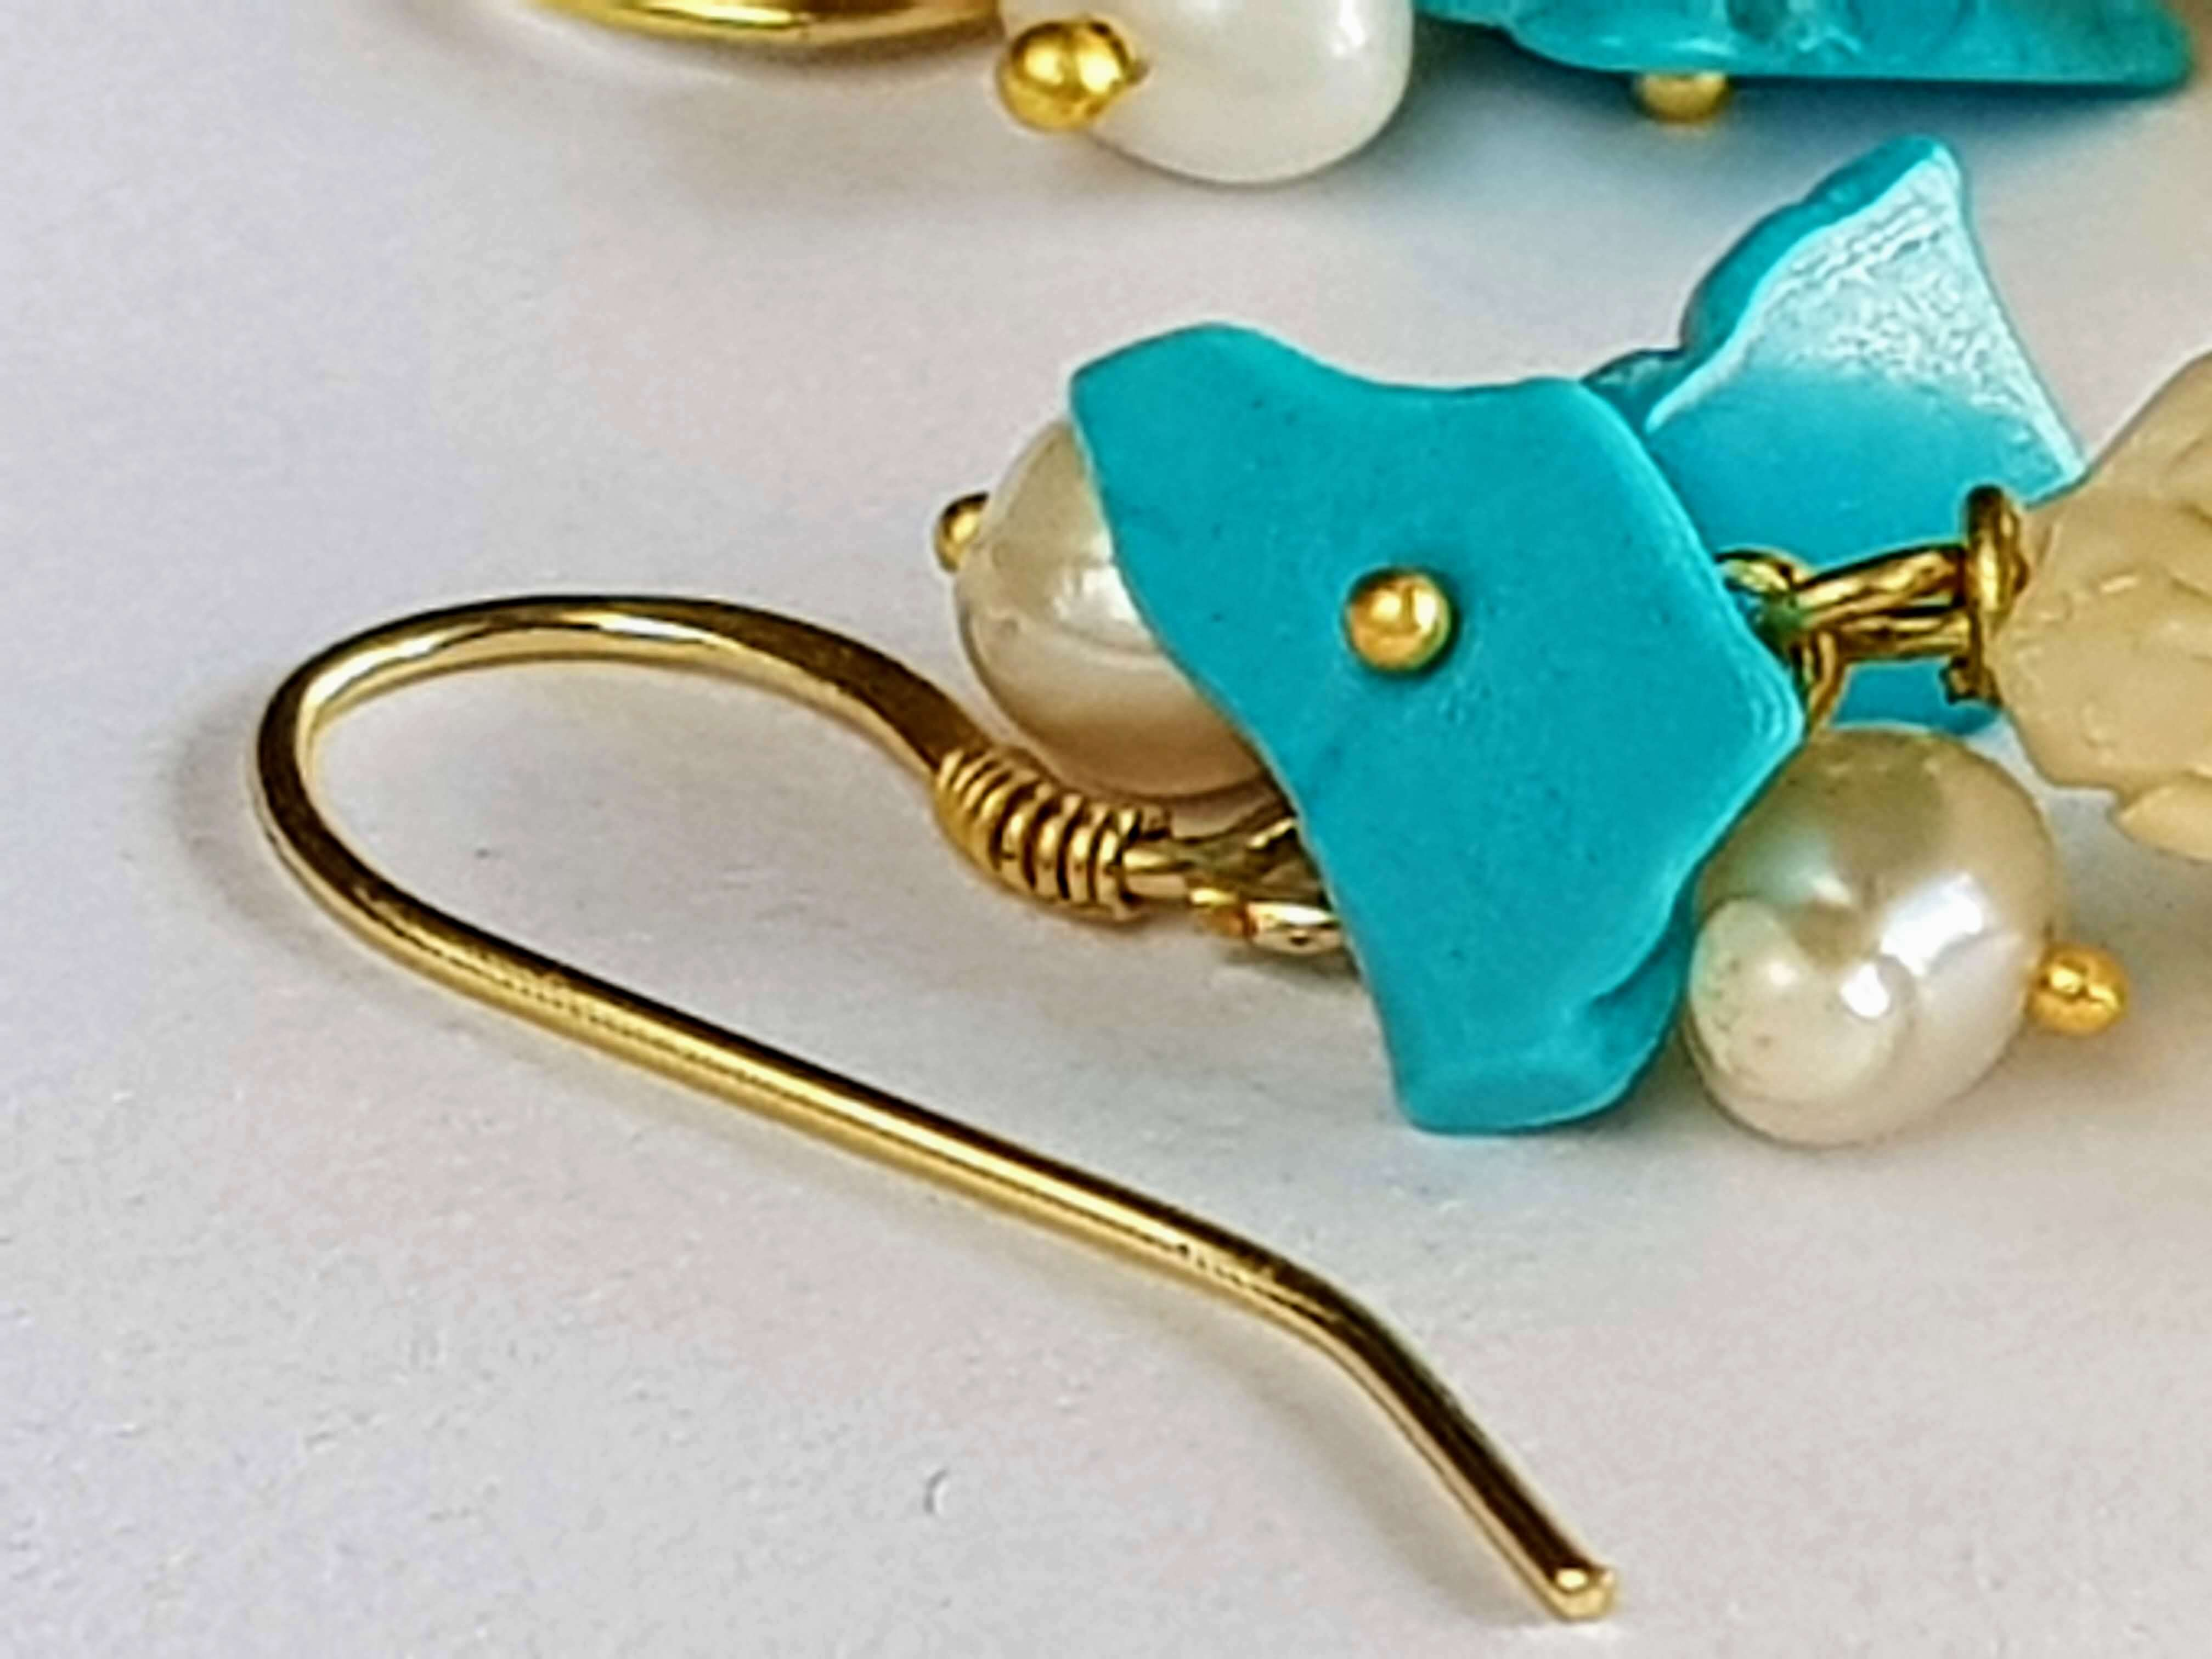 ivory and turquoise earrings | resort fashion